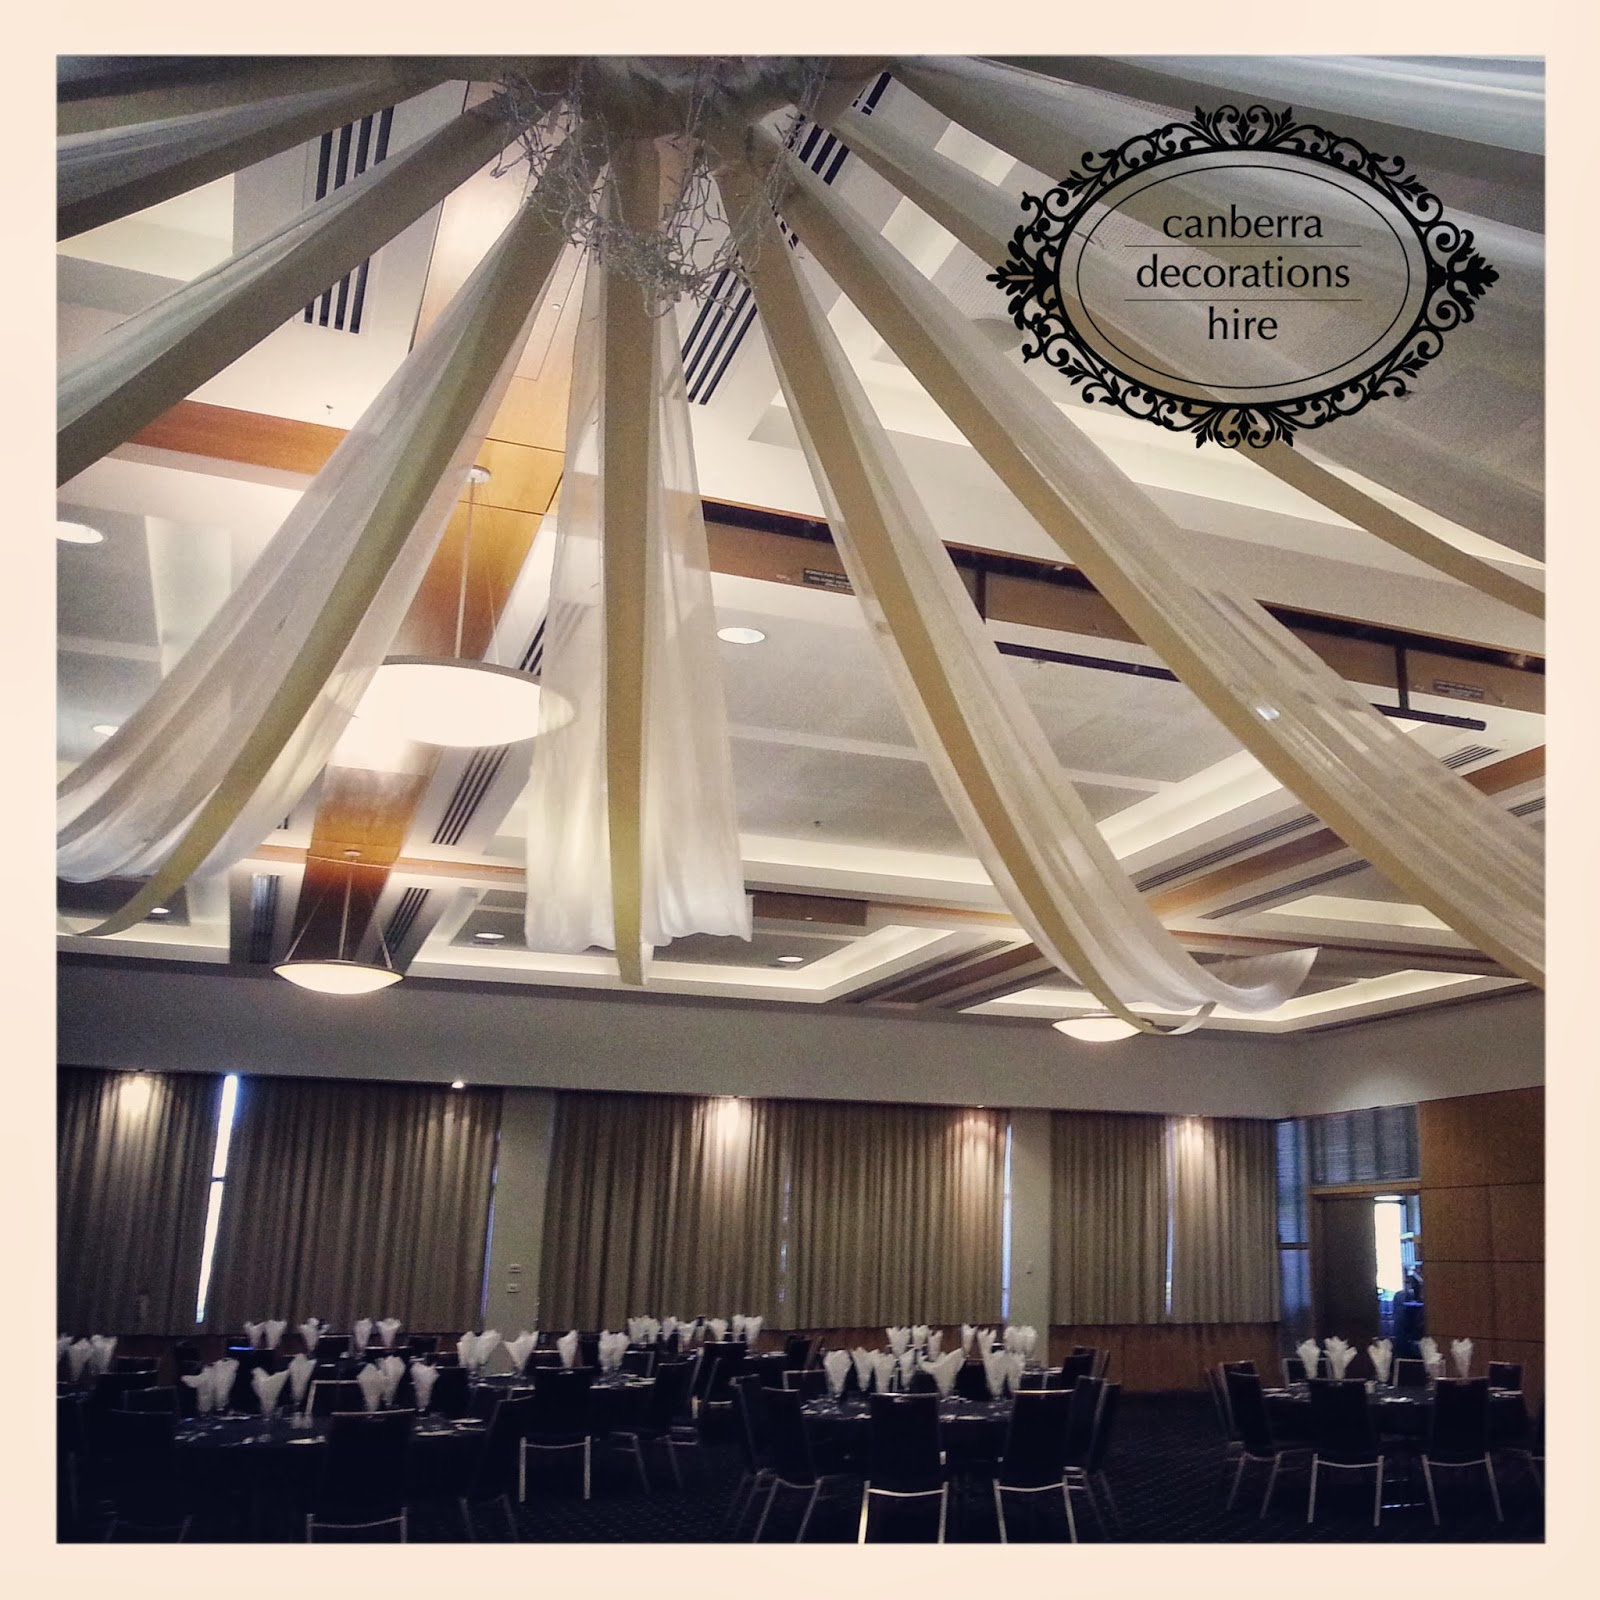 Canberra decorations hire here in canberra decorations hire we are fully understand every wedding has its budget we have wide variety of decorations from simple to extravagant junglespirit Choice Image